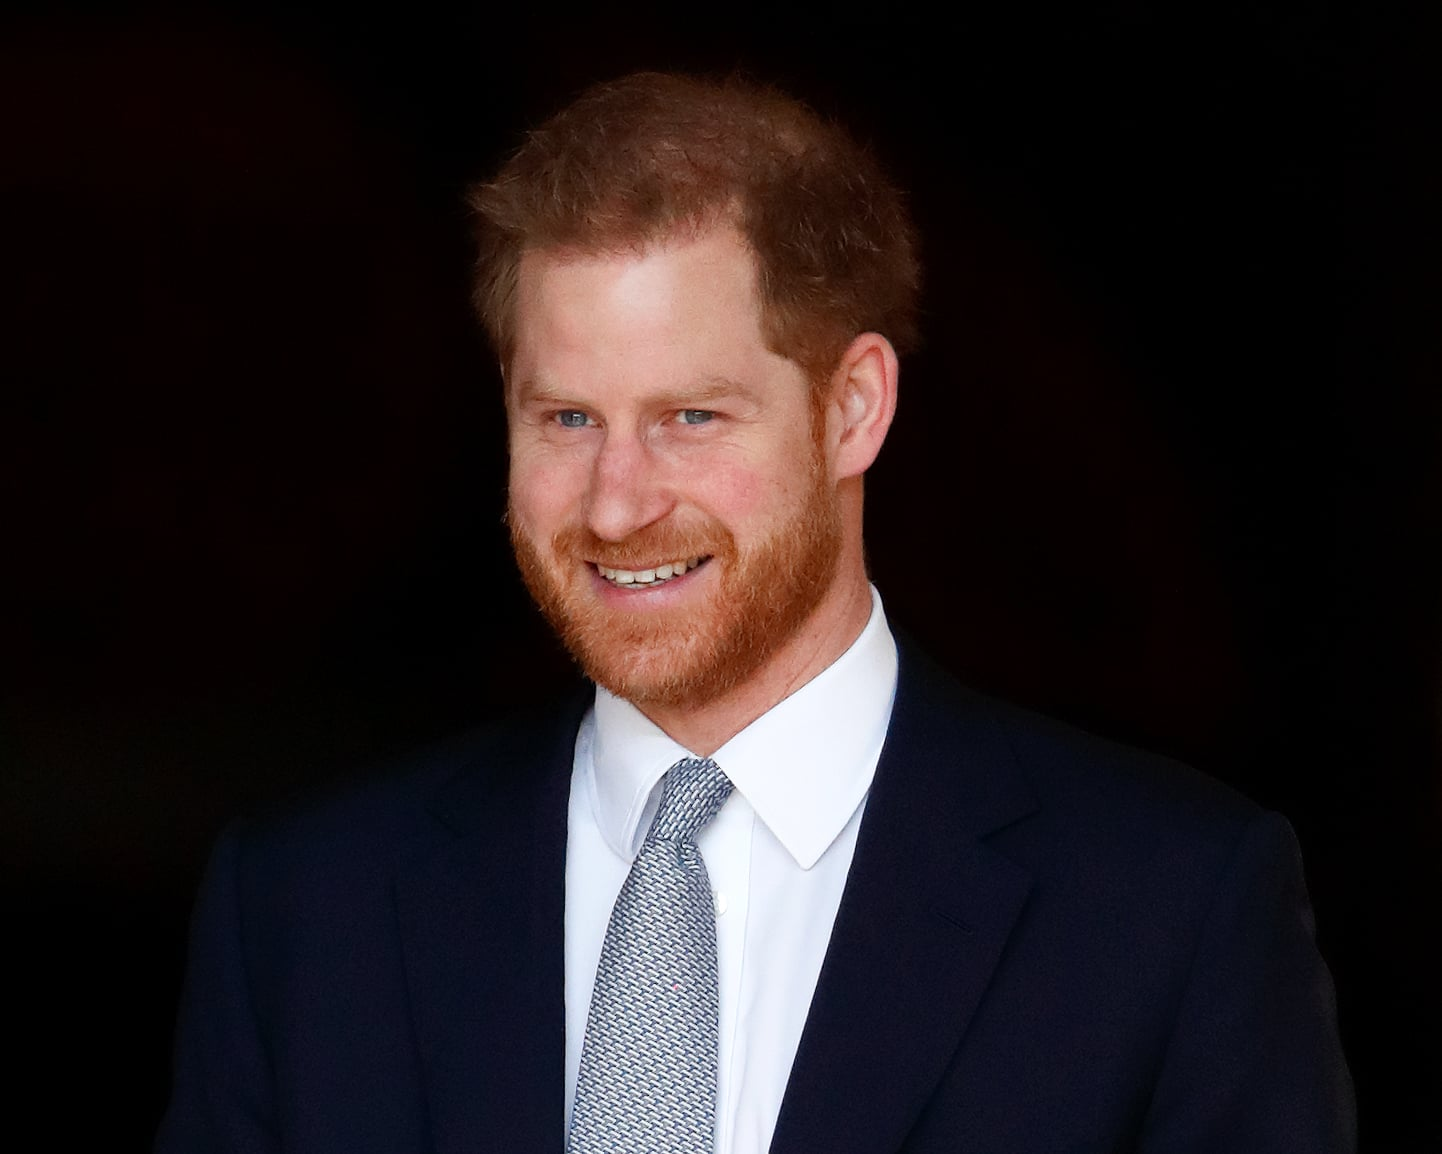 LONDON, UNITED KINGDOM - JANUARY 16: (EMBARGOED FOR PUBLICATION IN UK NEWSPAPERS UNTIL 24 HOURS AFTER CREATE DATE AND TIME) Prince Harry, Duke of Sussex hosts the Rugby League World Cup 2021 draws for the men's, women's and wheelchair tournaments at Buckingham Palace on January 16, 2020 in London, England. (Photo by Max Mumby/Indigo/Getty Images)